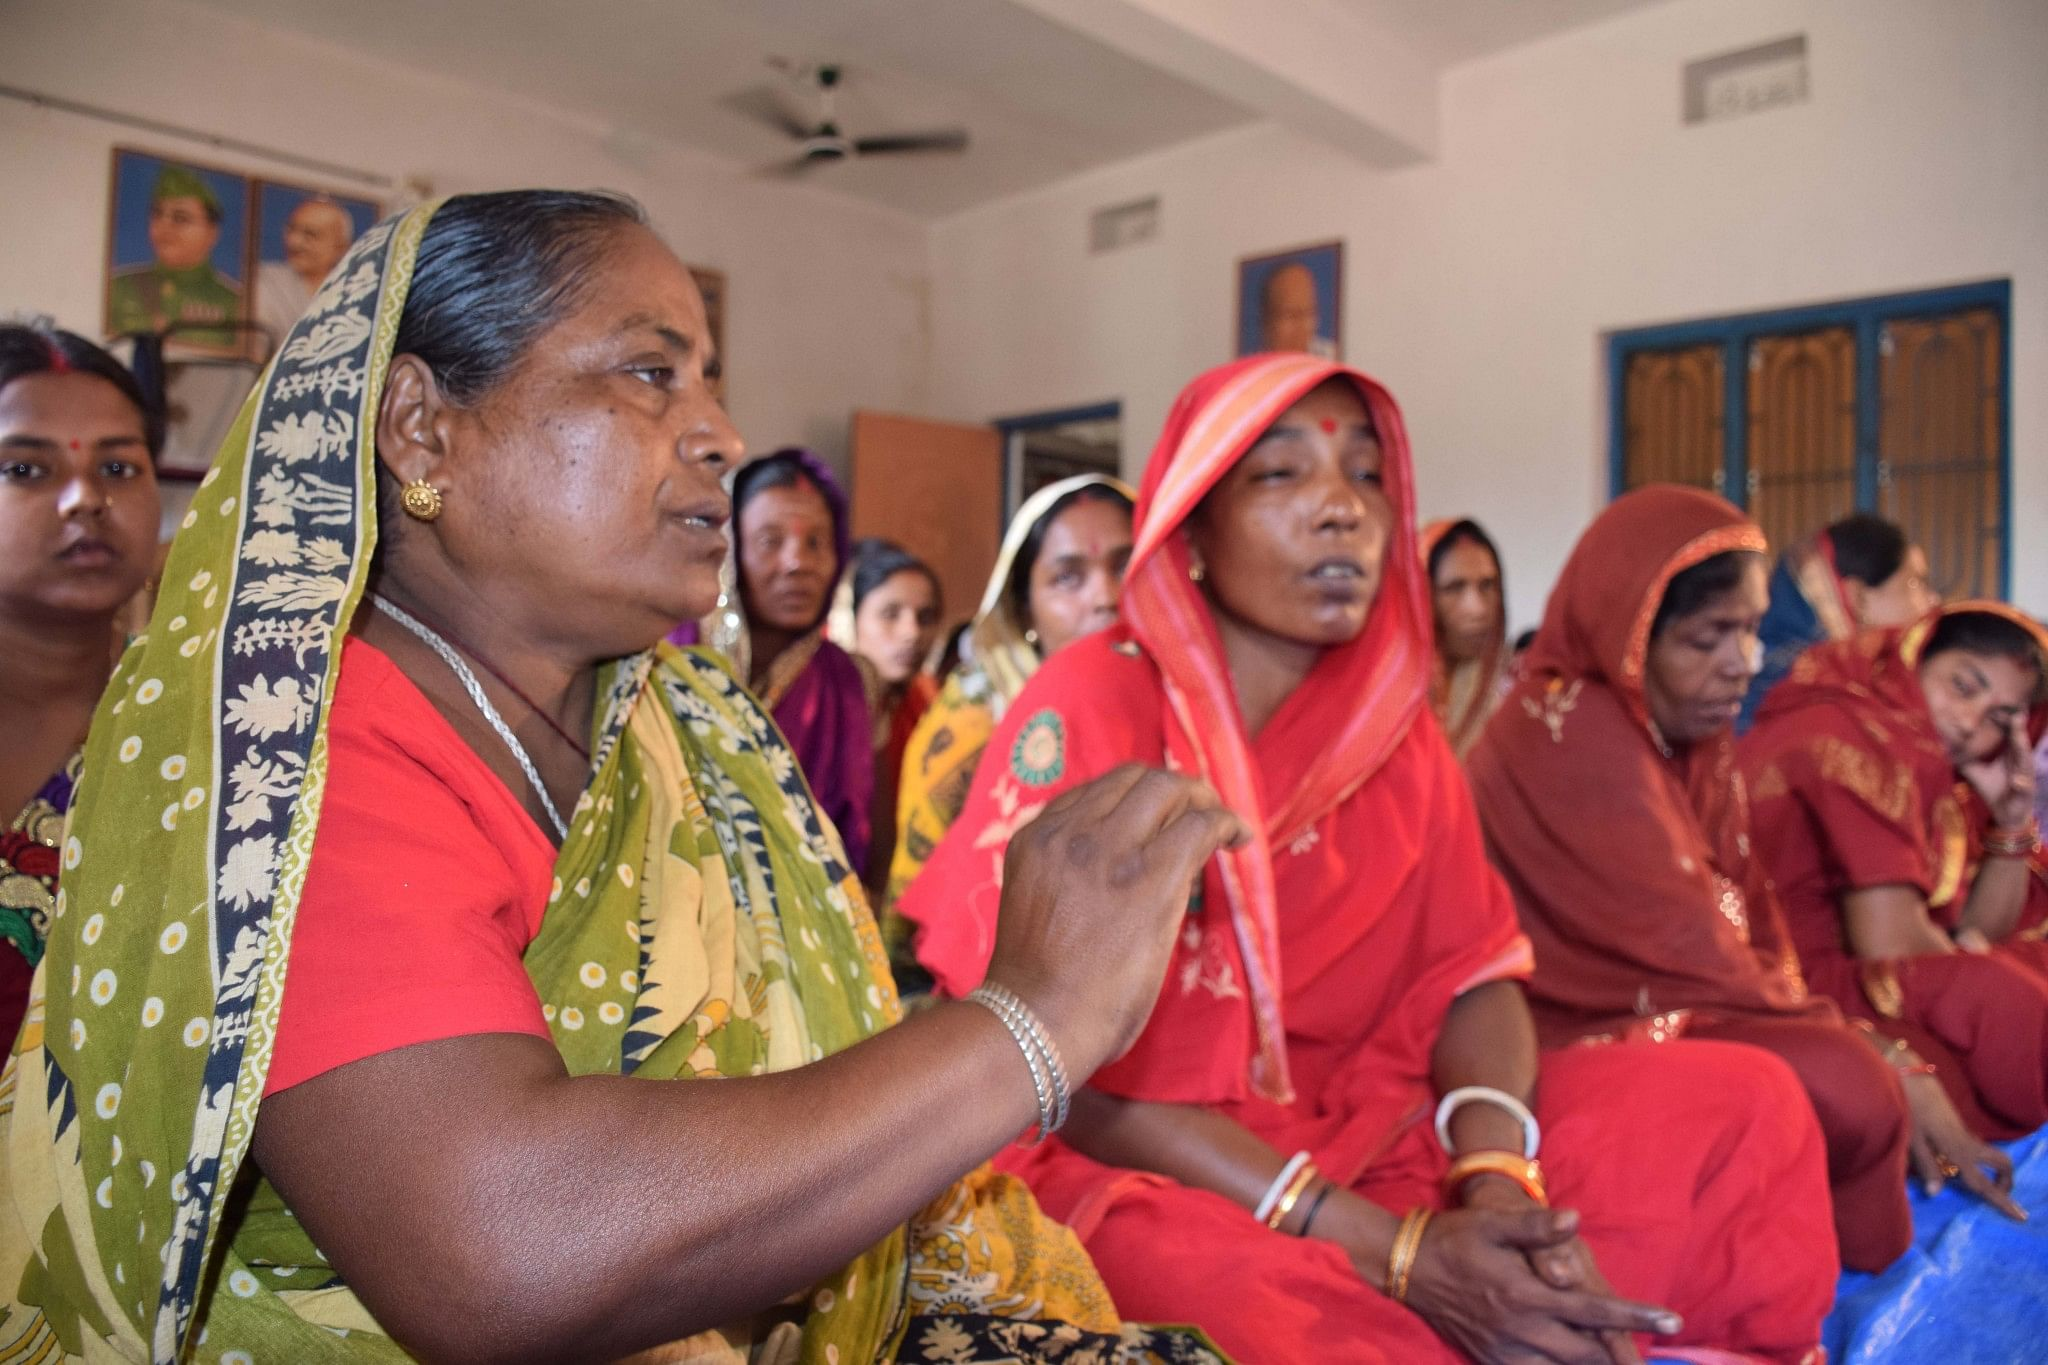 Sabita Pradhan (in green sari), president of the women's self-help group of Hatiapal village, believes that more active women panchayat members will expedite the change towards reducing the social acceptance of violence against a woman. (Credit: Manipadma Jena\WFS)